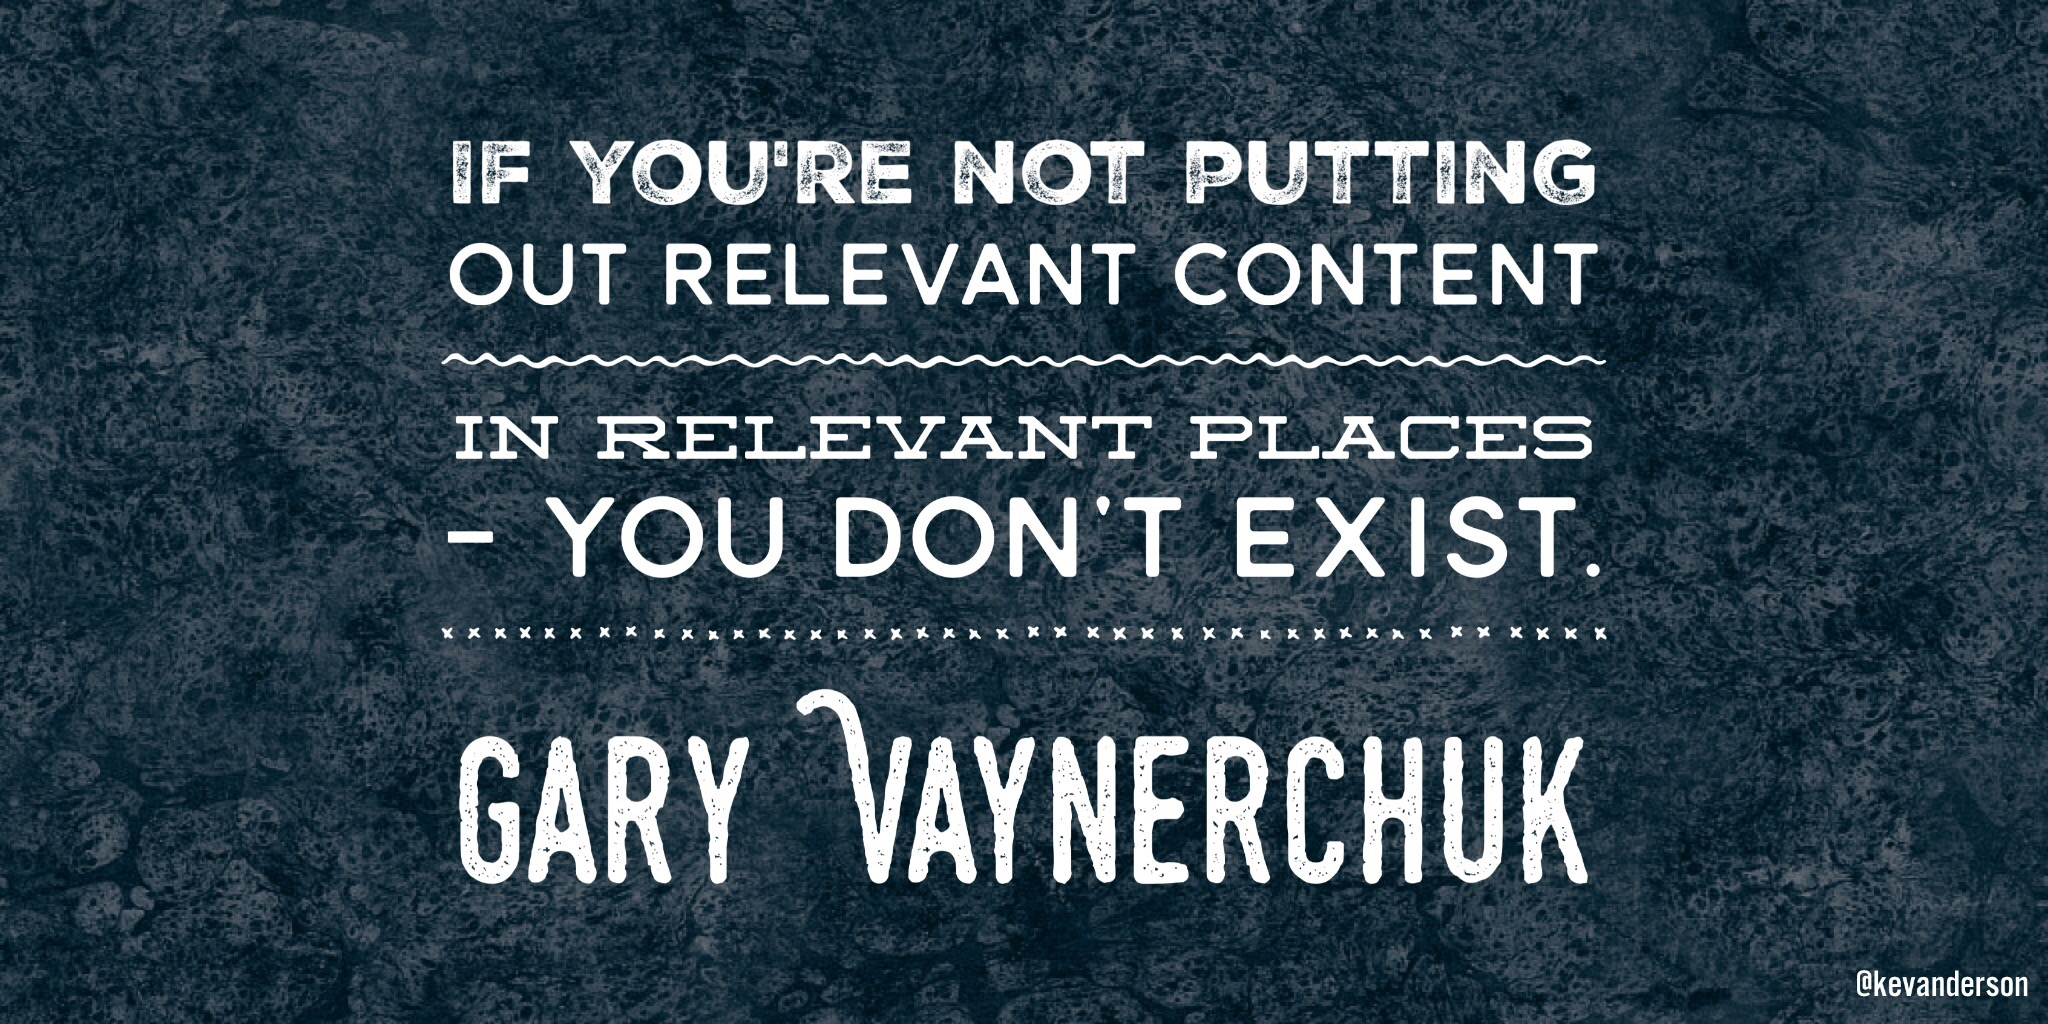 gary vaynerchuk quote about content